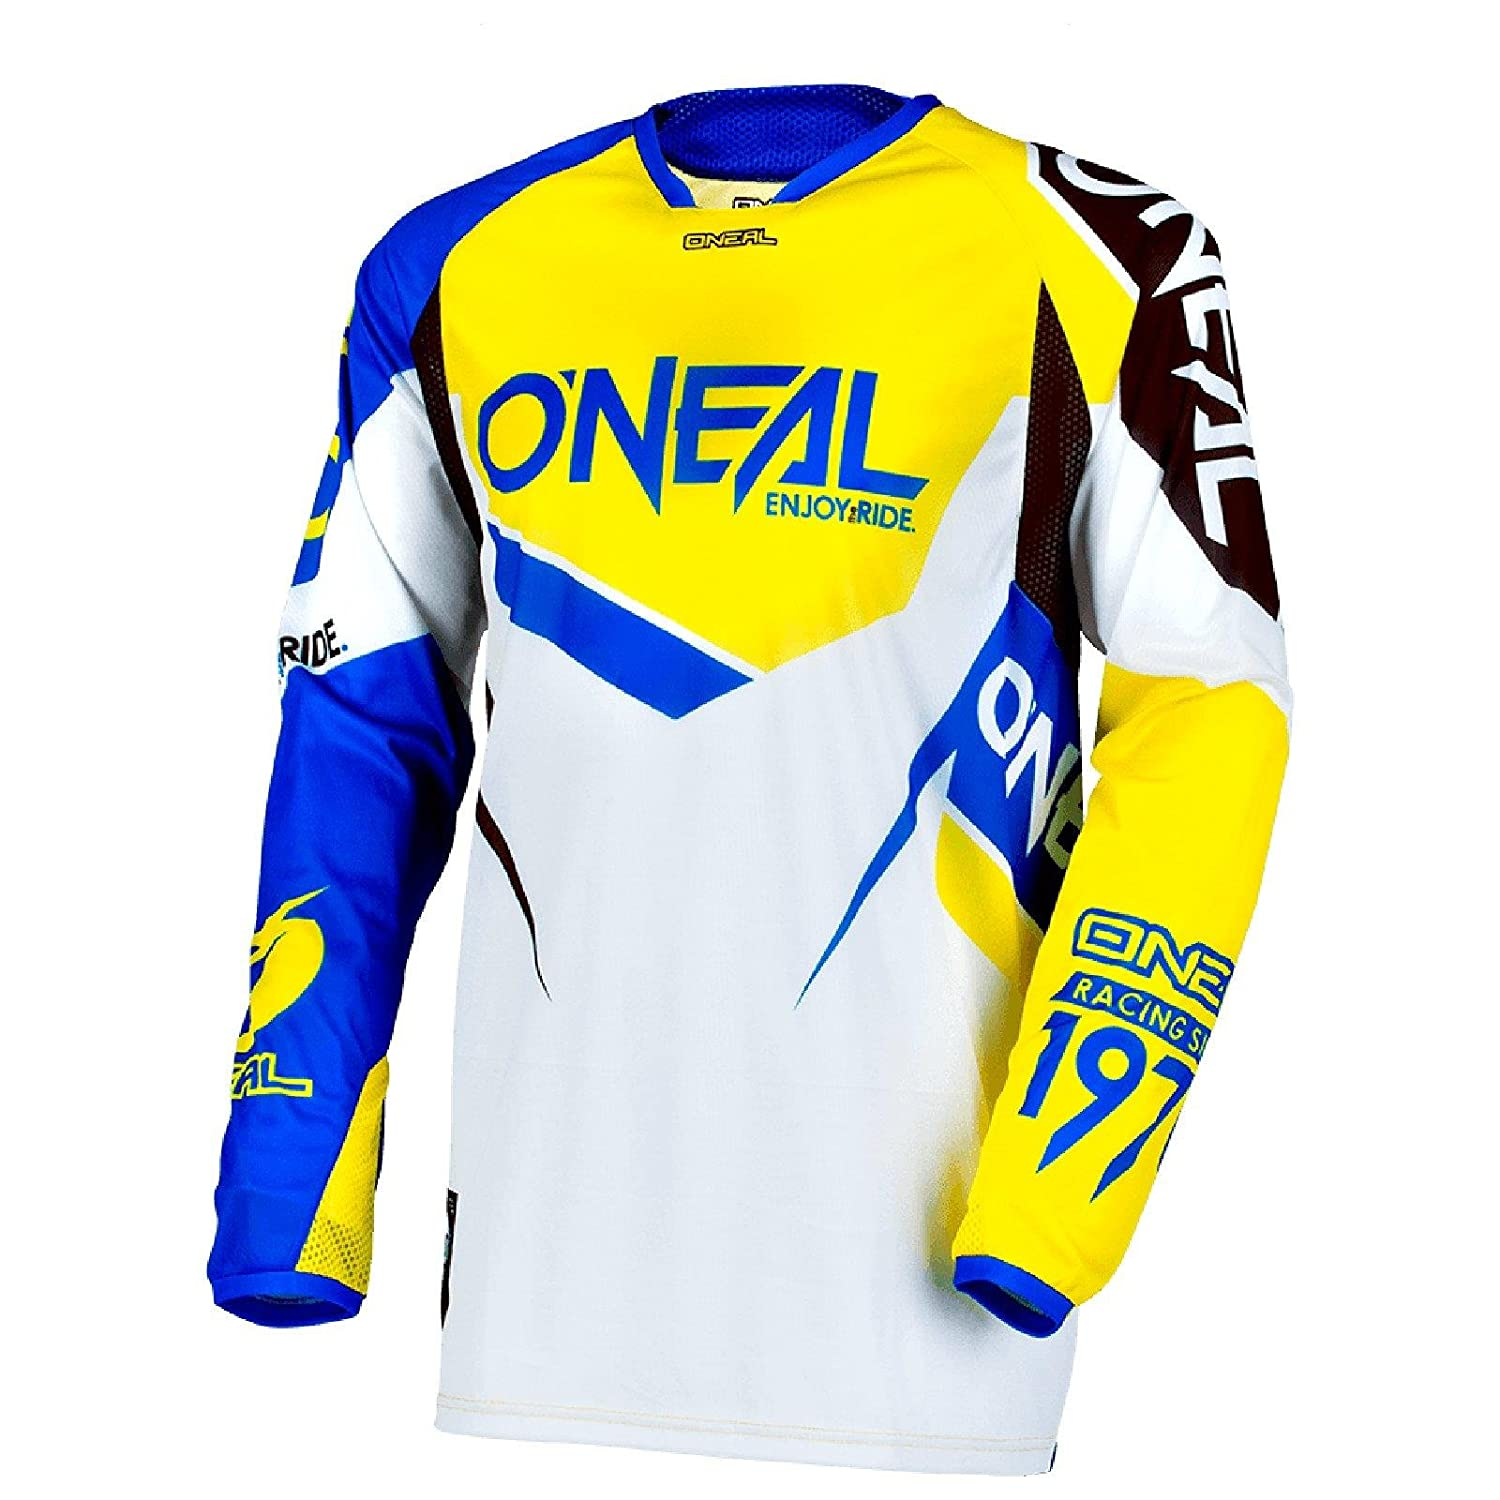 ONeal Unisex-Adult Hard wear Jersey Flow Blue//Yellow XX-Large